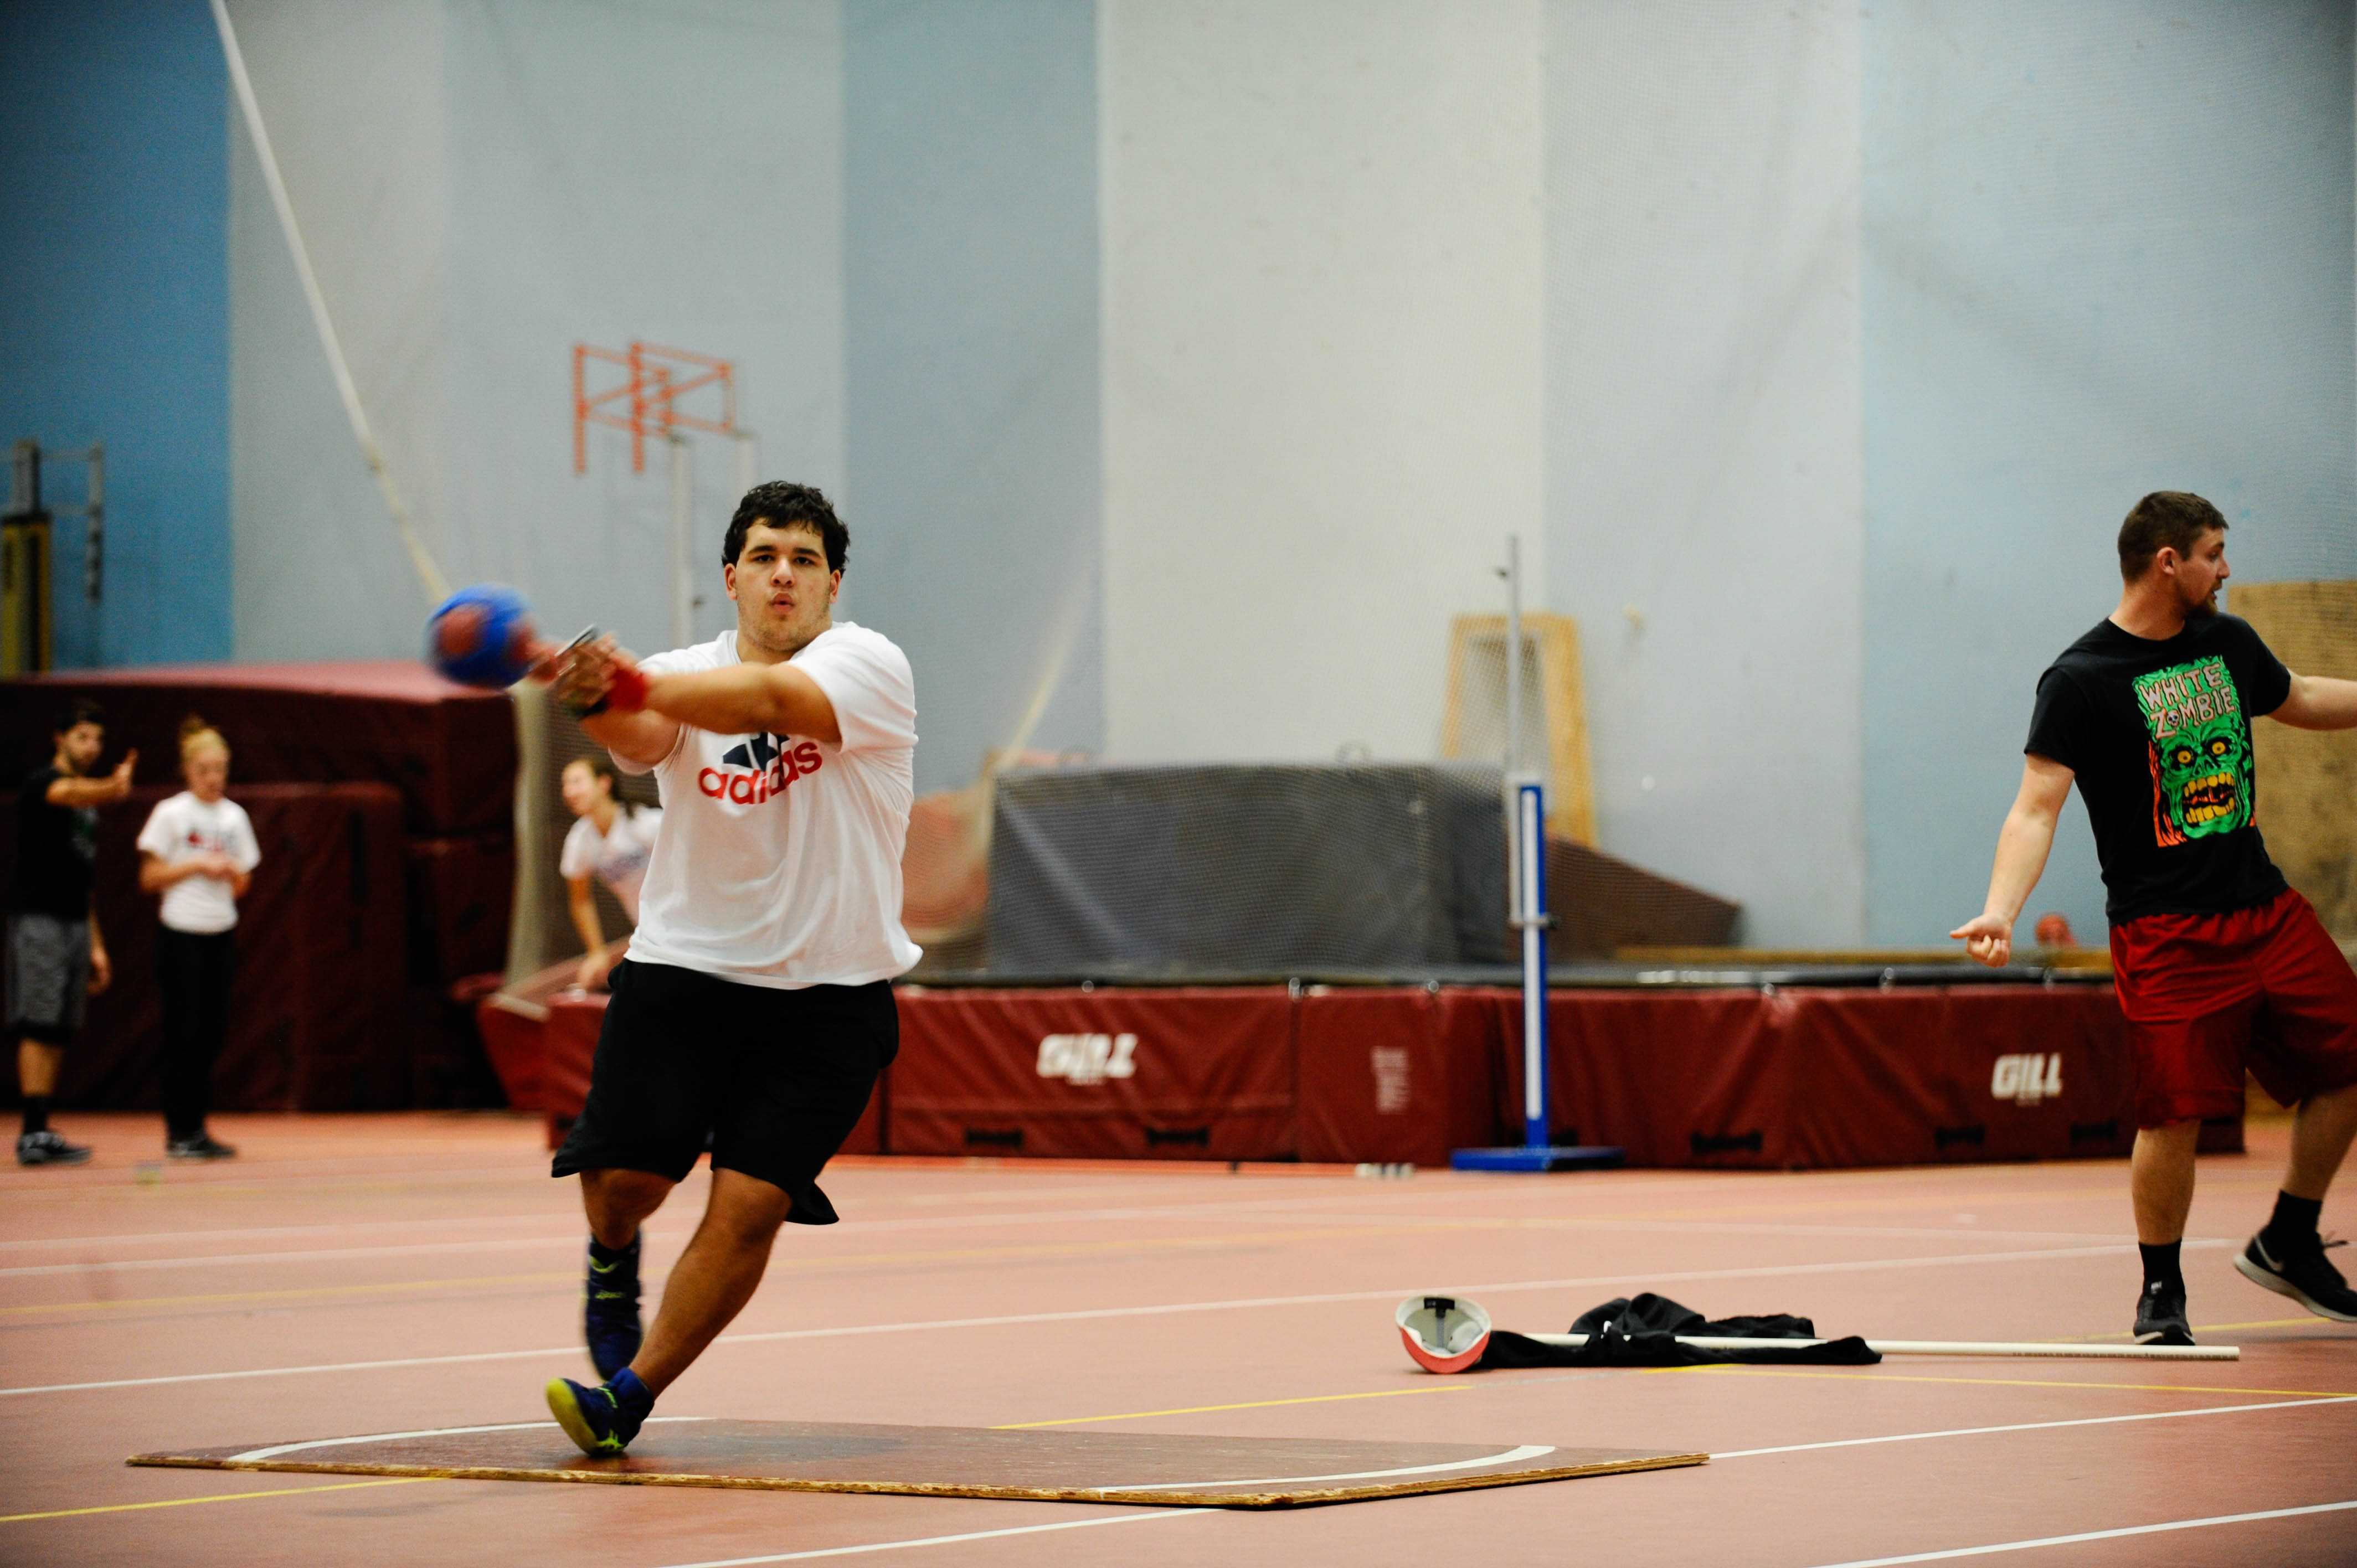 This will be the CWU Track and Field team's first full-squad meet. Some athletes have already competed in the EWU Candy Cane Multis IX on Dec. 2 and 3 in Cheney.